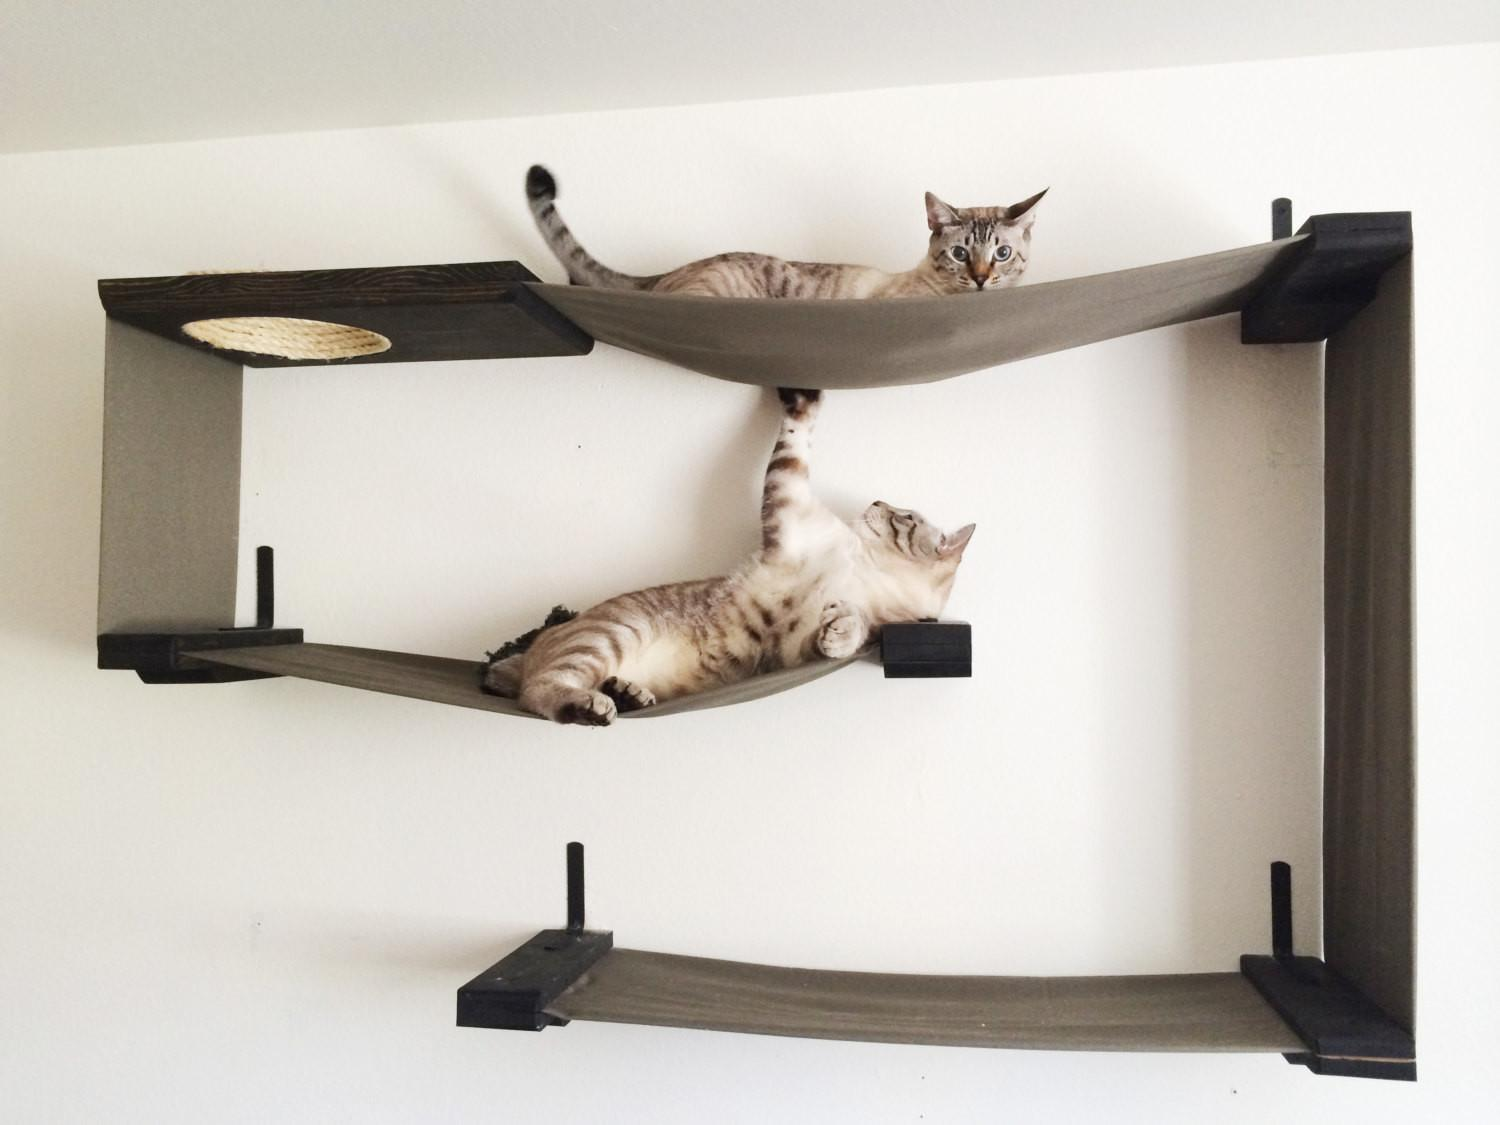 Fabric Cat Maze Hammock Shelves Catastrophicreations